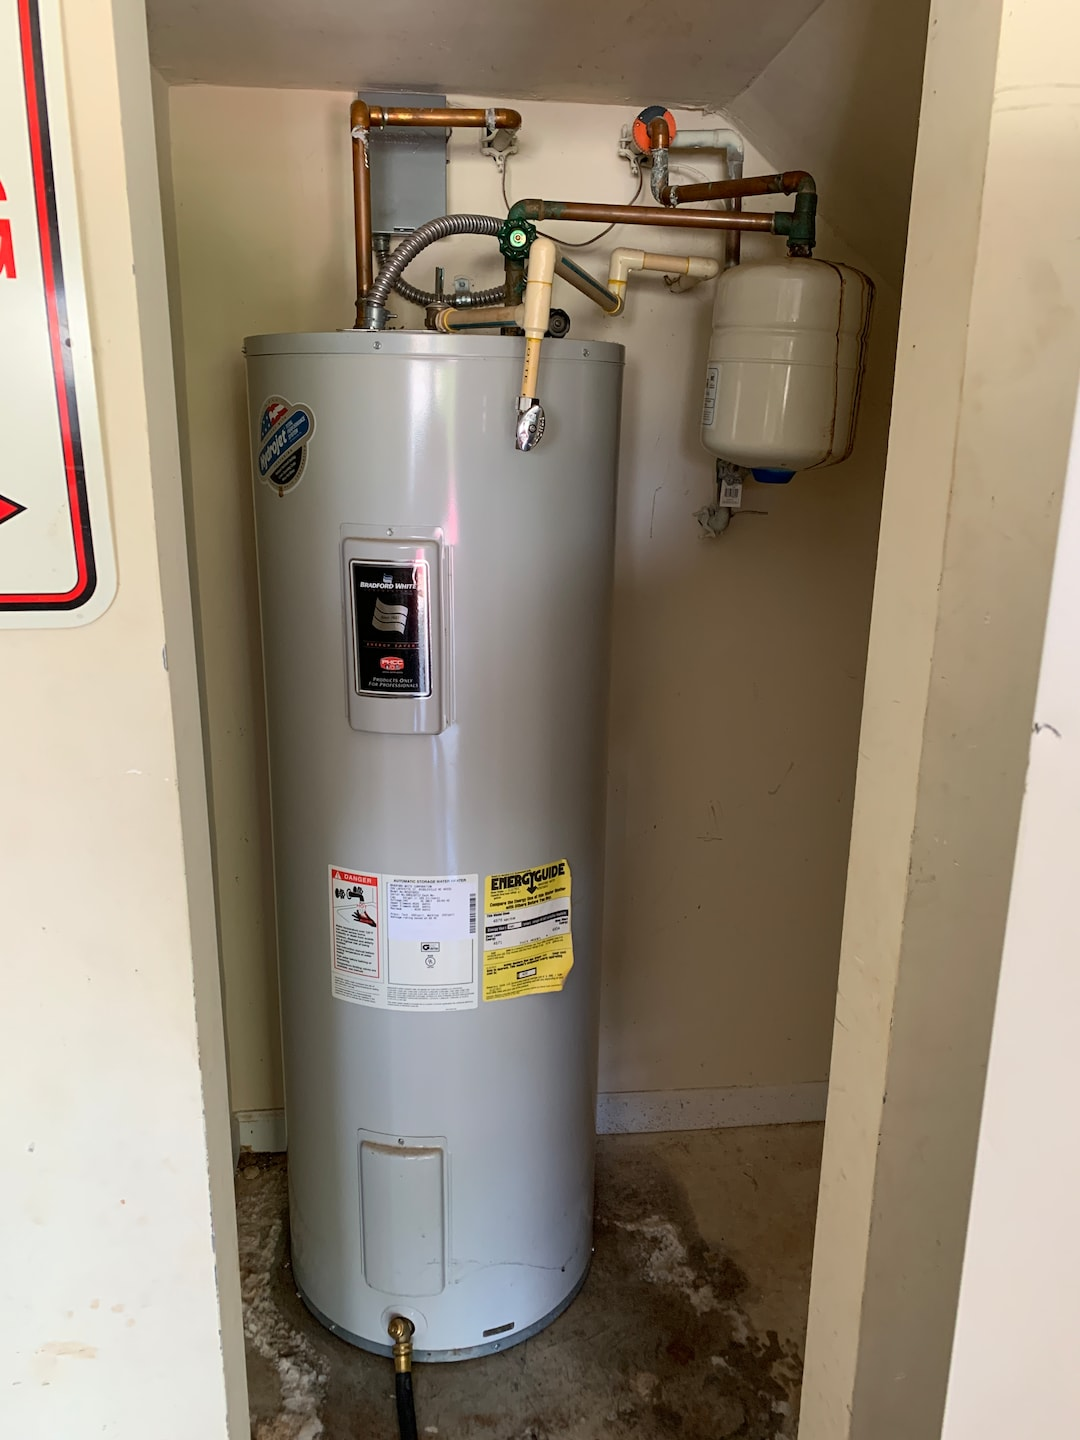 Convert from electric water heater to tankless gas.